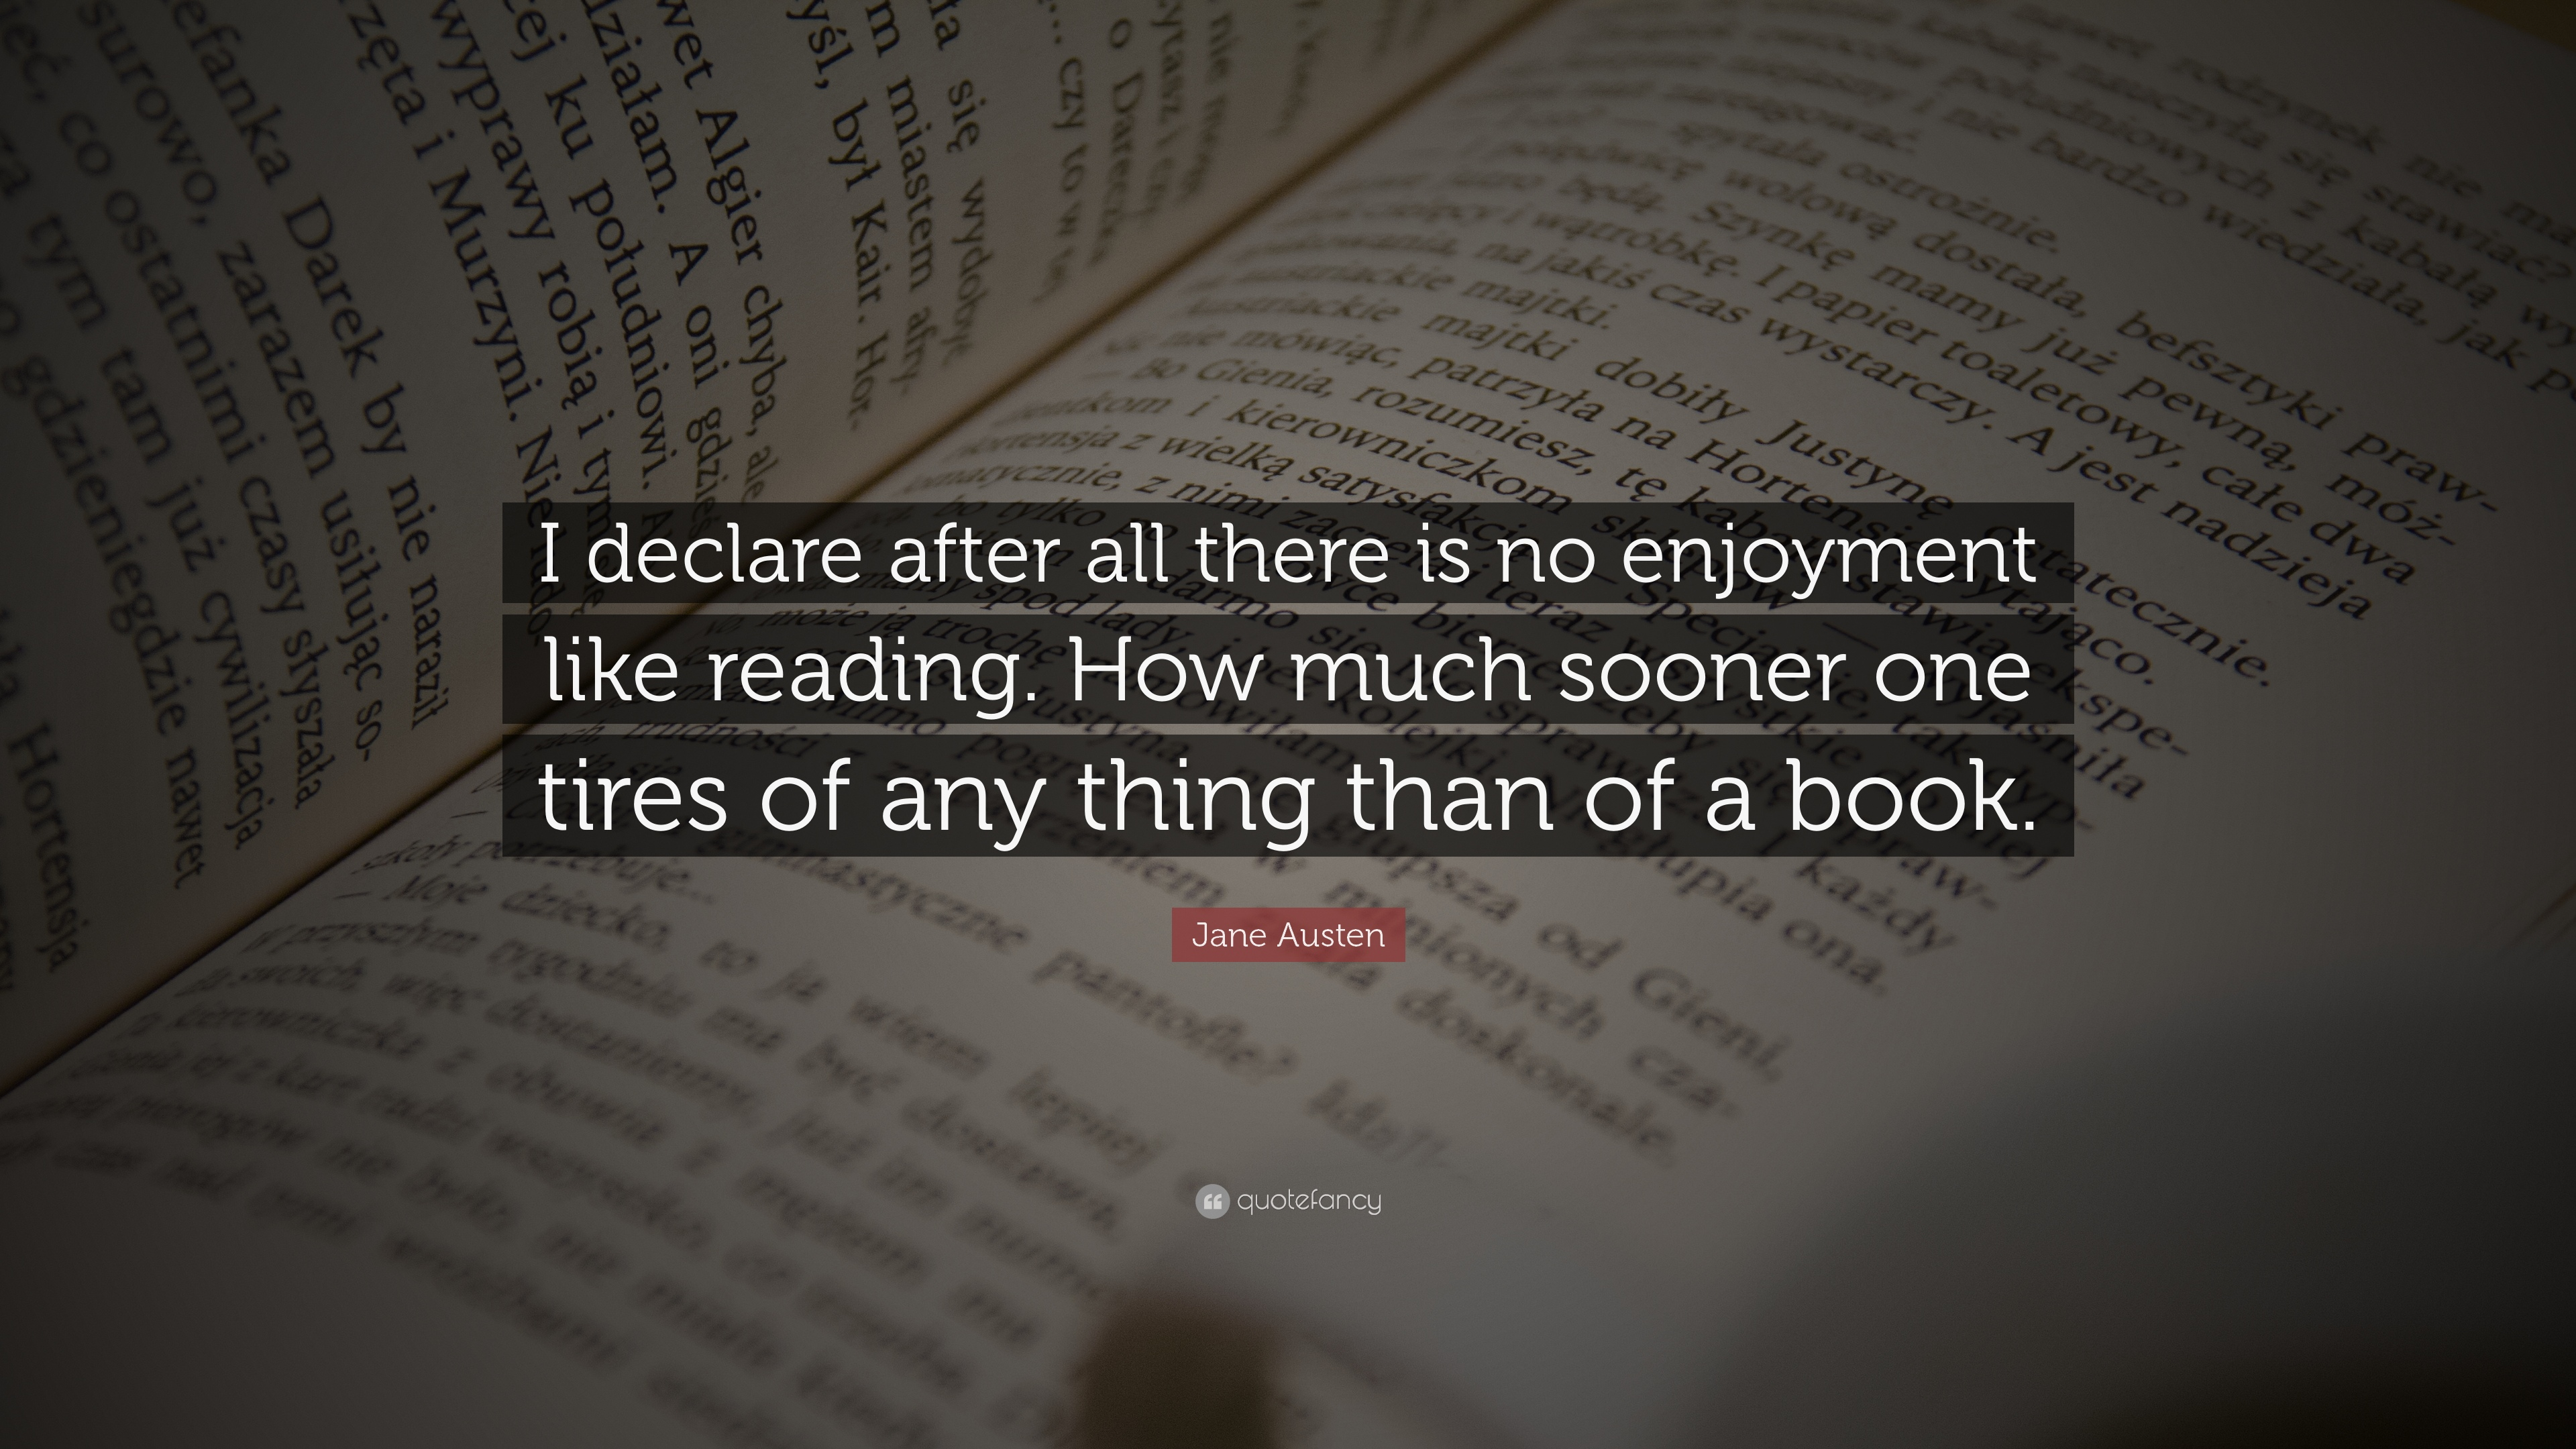 Quotes about books and reading 22 wallpapers quotefancy quotes about books and reading i declare after all there is no enjoyment like publicscrutiny Image collections